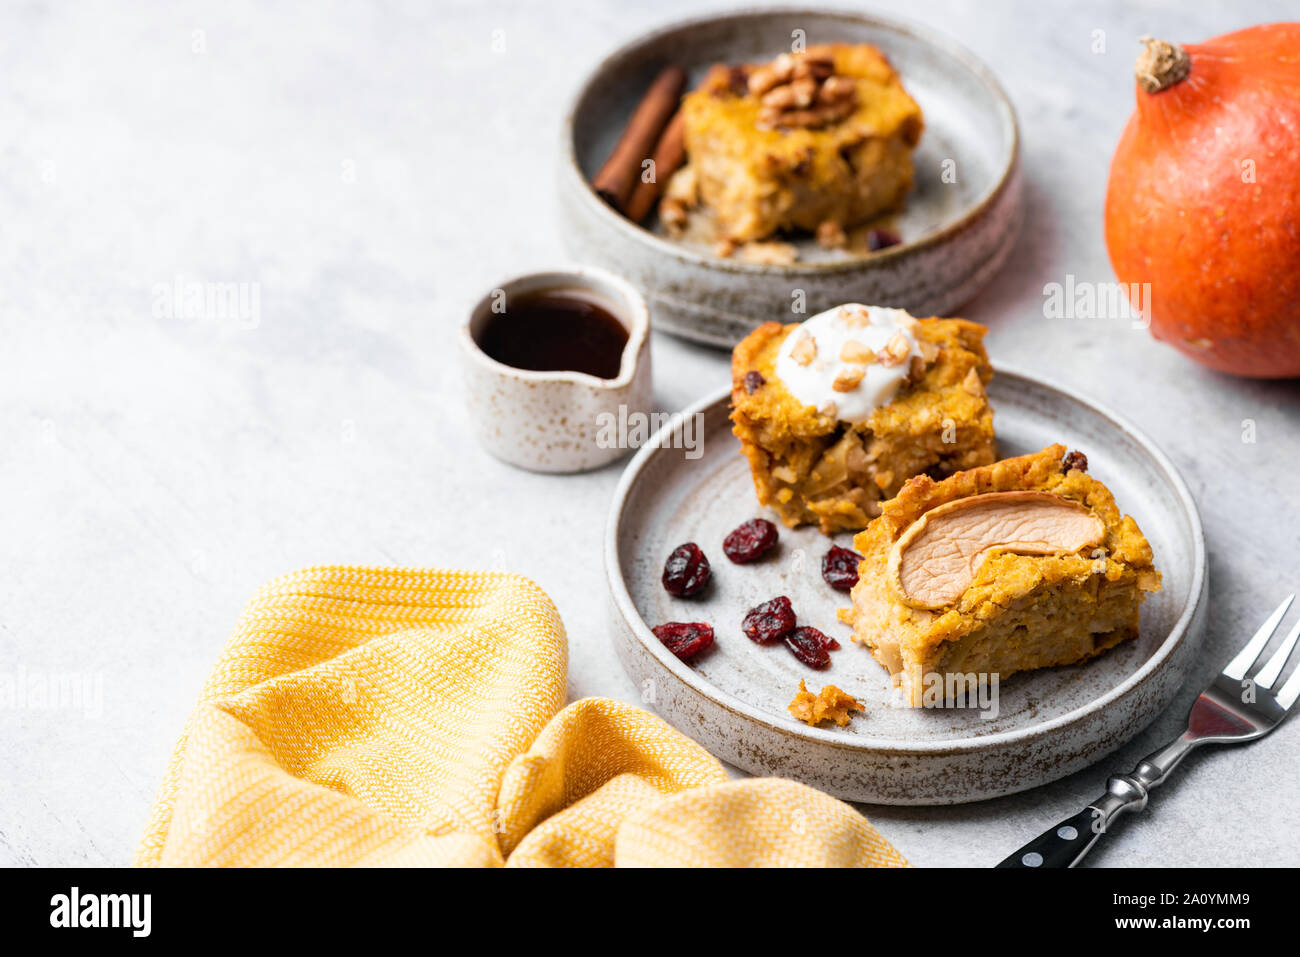 Pumpkin cake square with walnuts, dried cranberry and yogurt on plate. Healthy american pumpkin pie Stock Photo